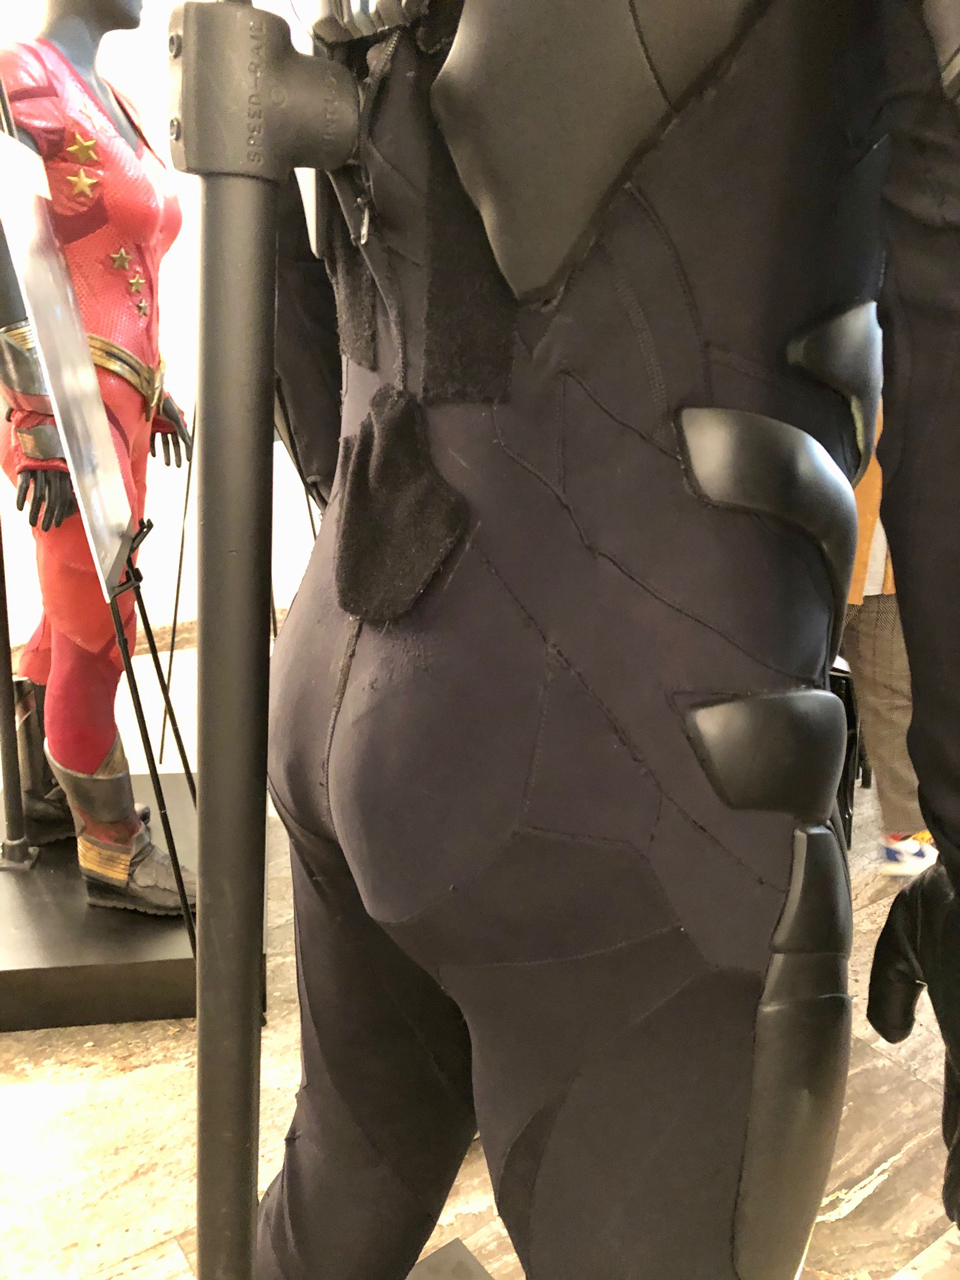 Nightwing-butt-1.jpg